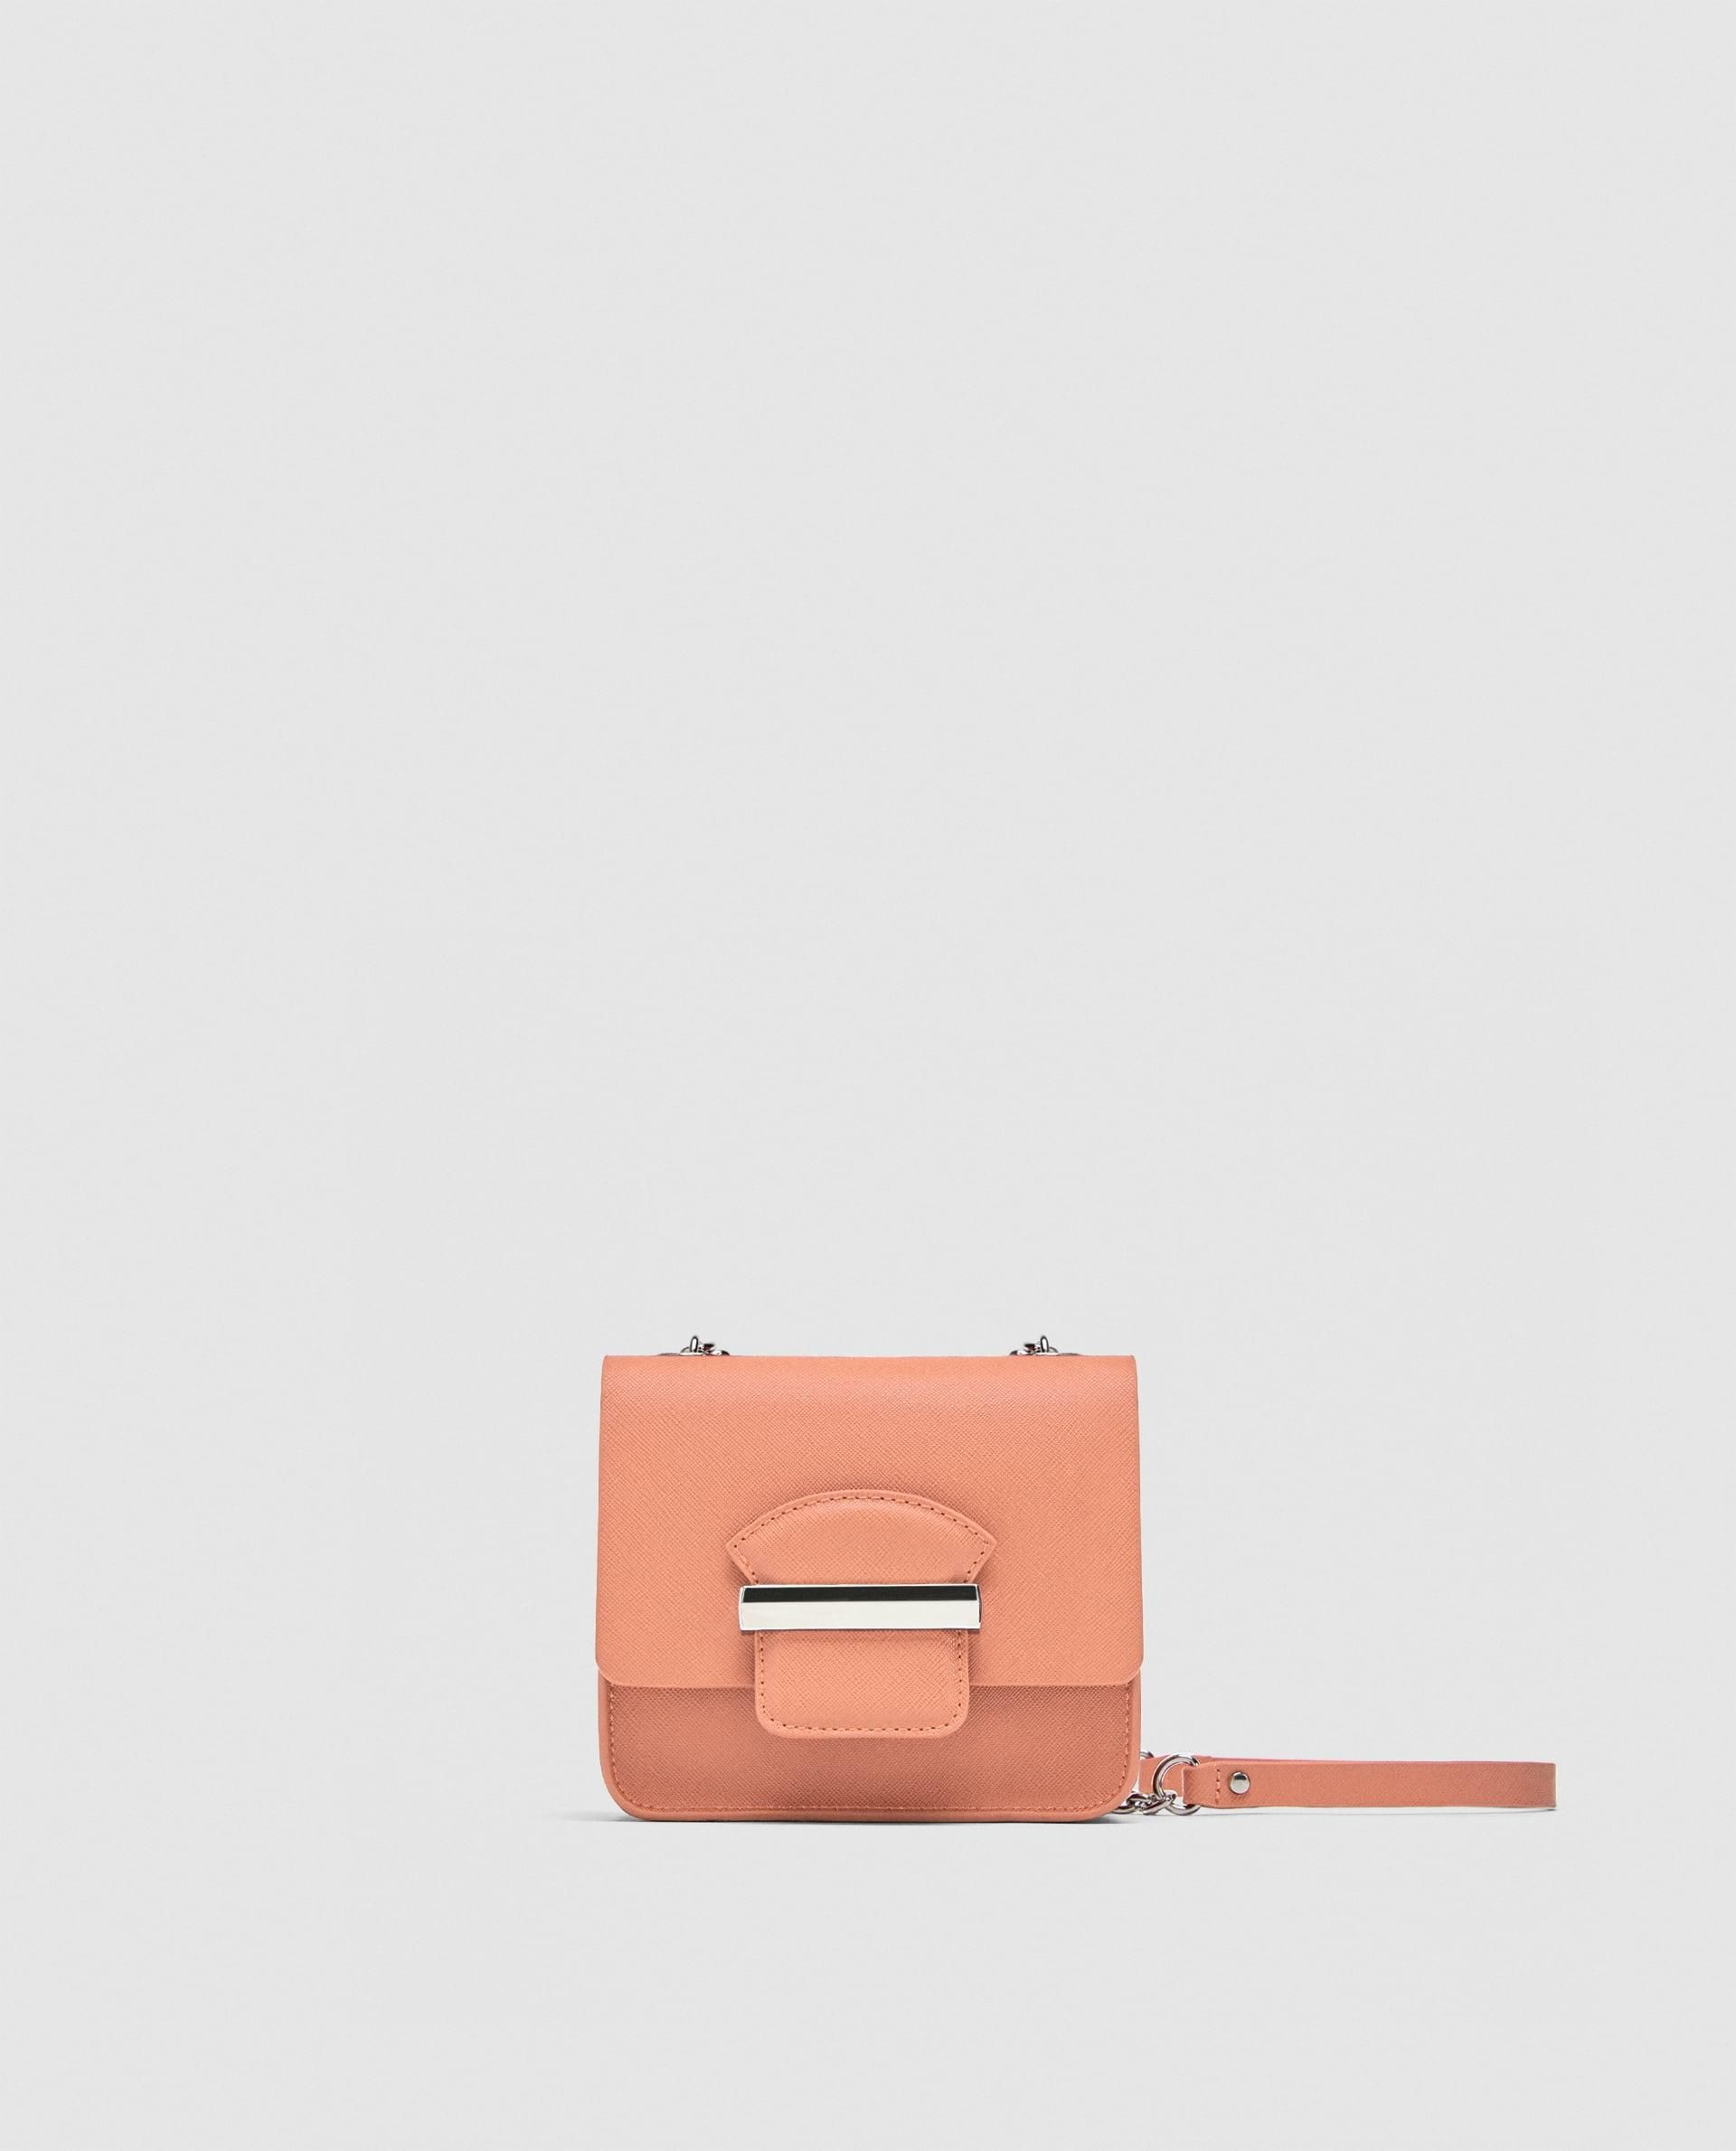 1d20dcd3bee Crossbody Bag With Chain Strap // 29.90 USD // Zara // Mini crossbody bag  available in several colors. Decorative detail on flap. Chain link shoulder  strap.